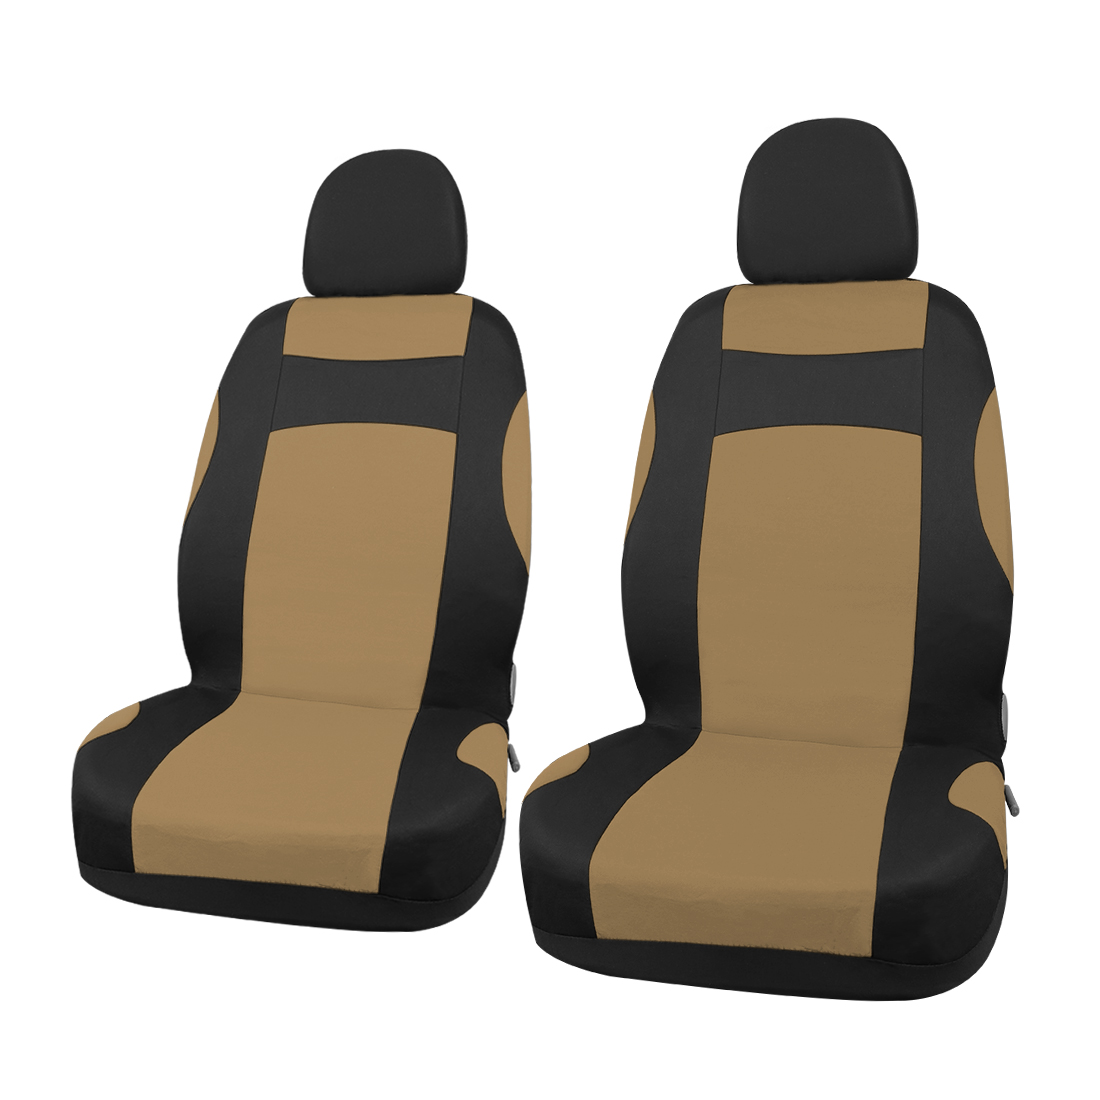 New Car Seat Covers Full Set for Auto w/ 4 Head Rests Beige